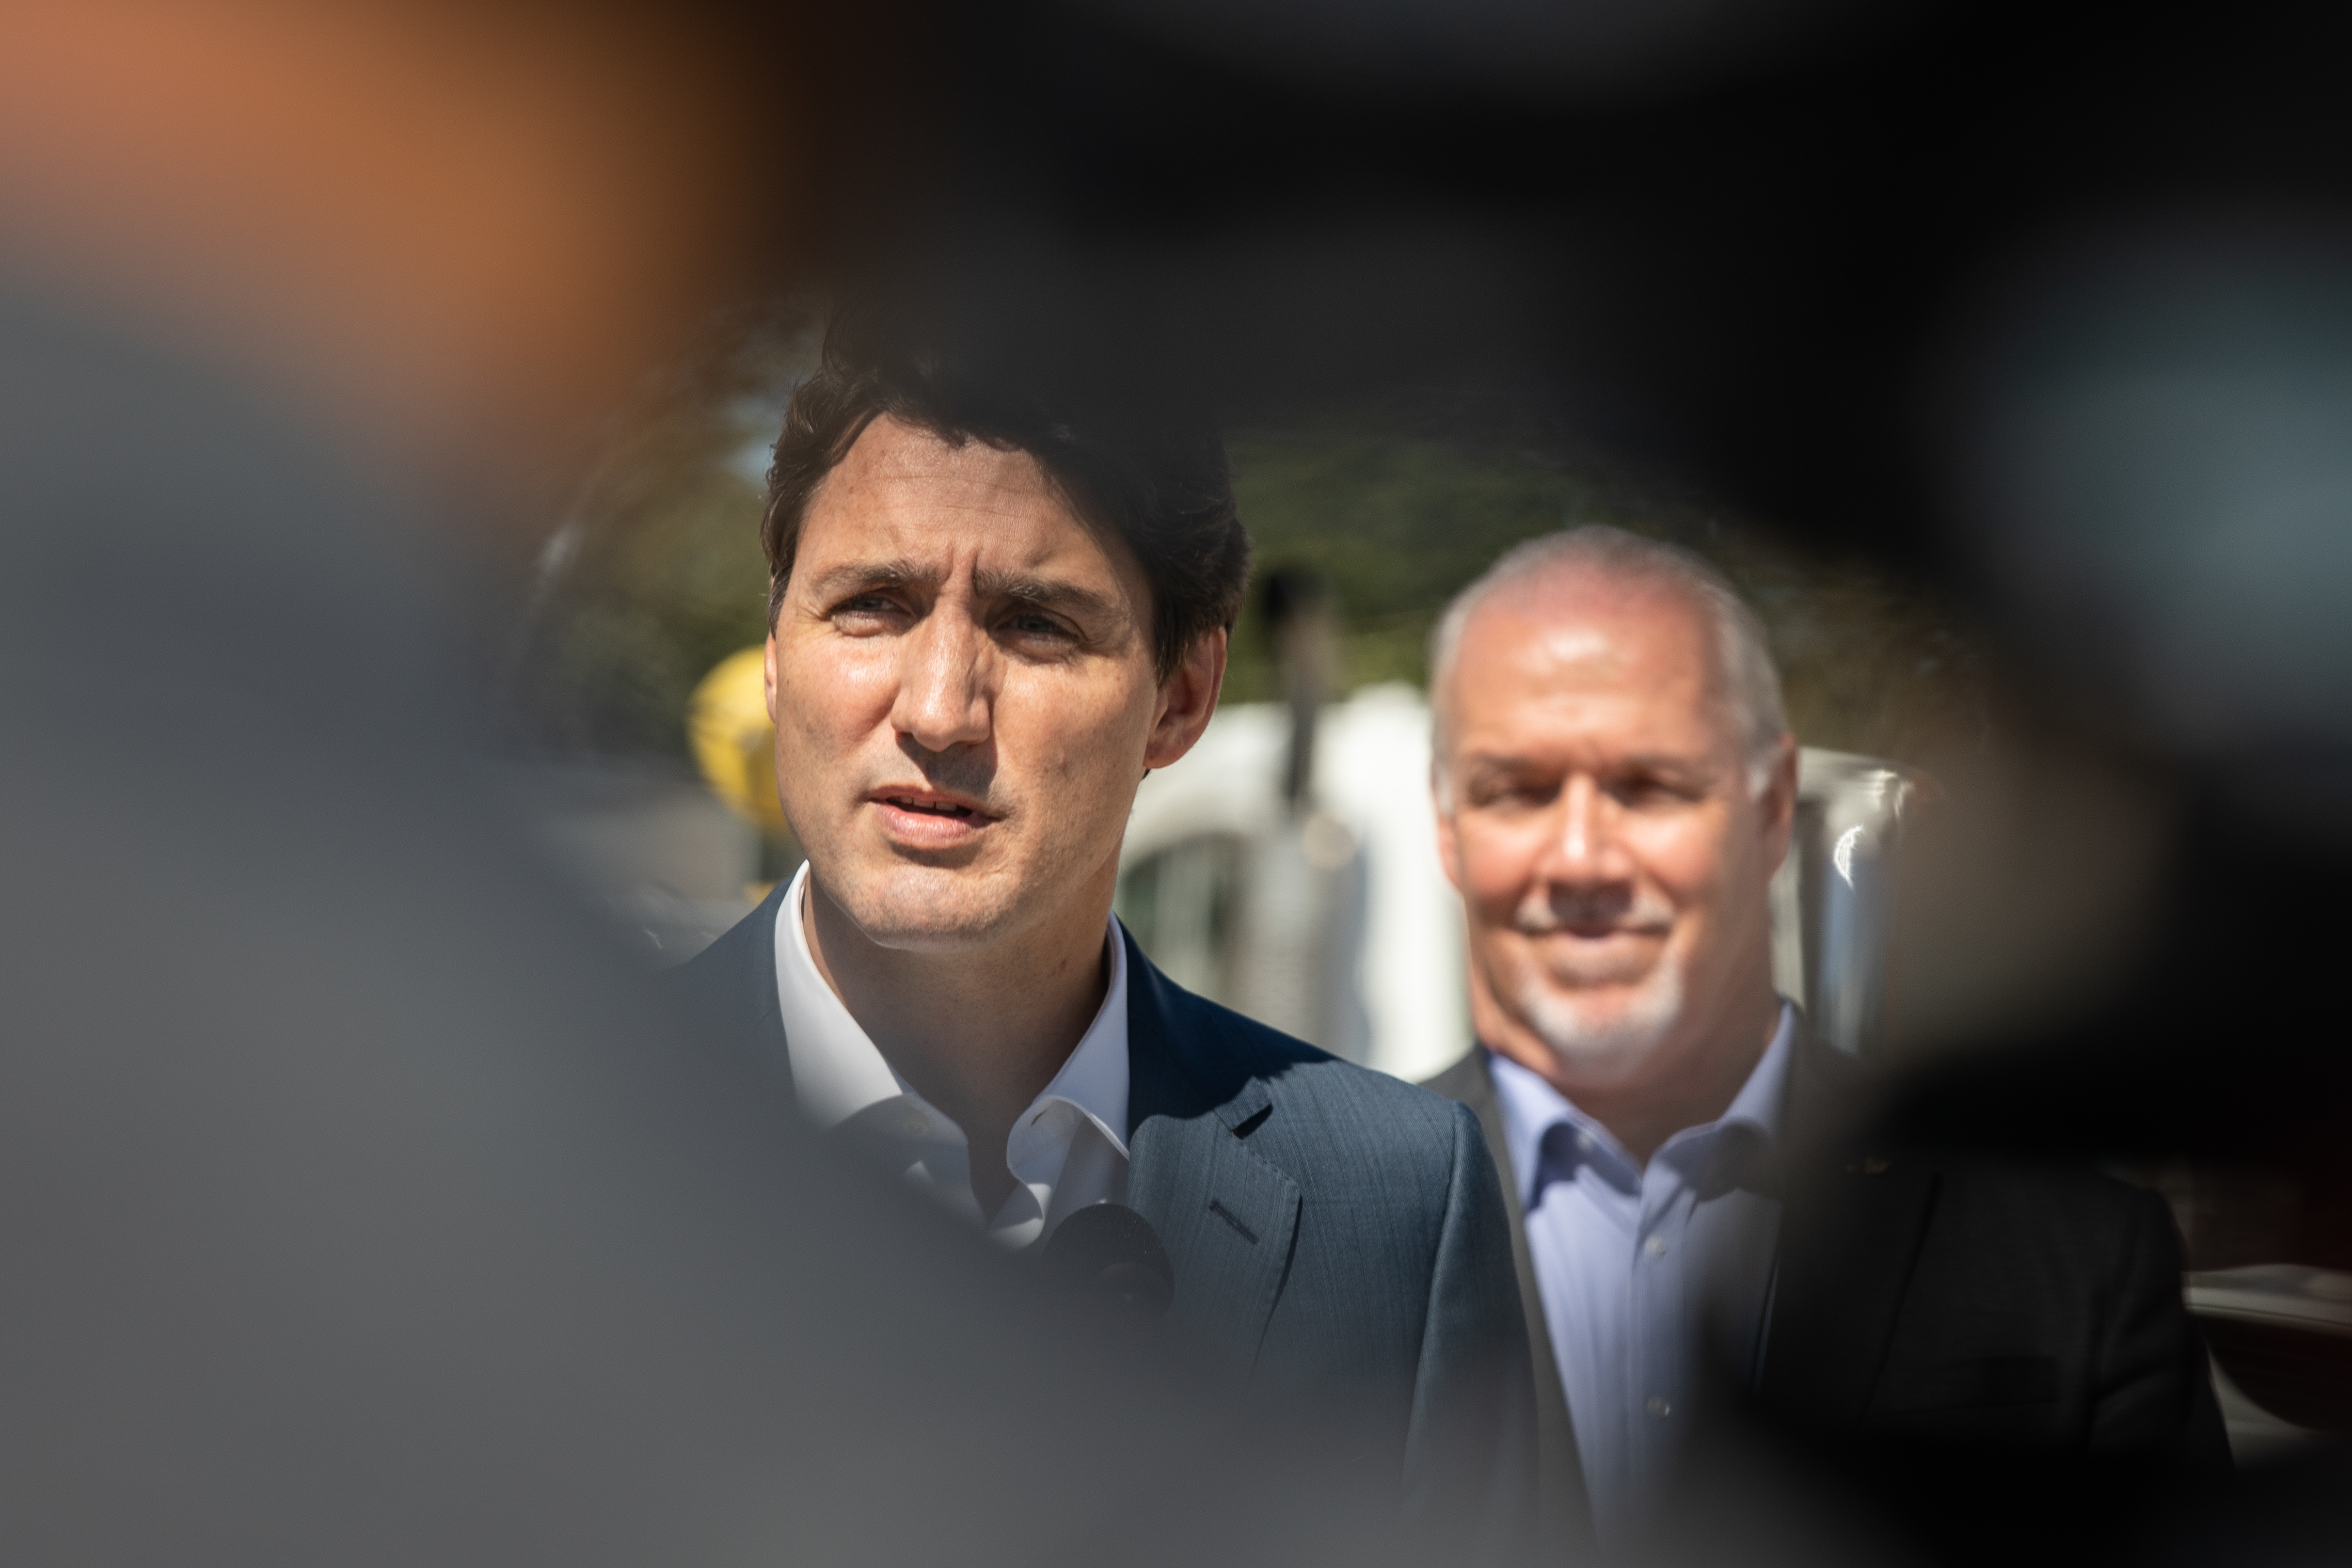 Prime Minister Justin Trudeau and B.C. Premier John Horgan make an announcement at the B.C. Hydro Trades Training Centre in Surrey on Aug. 29, 2019. (Maggie MacPherson/CBC)